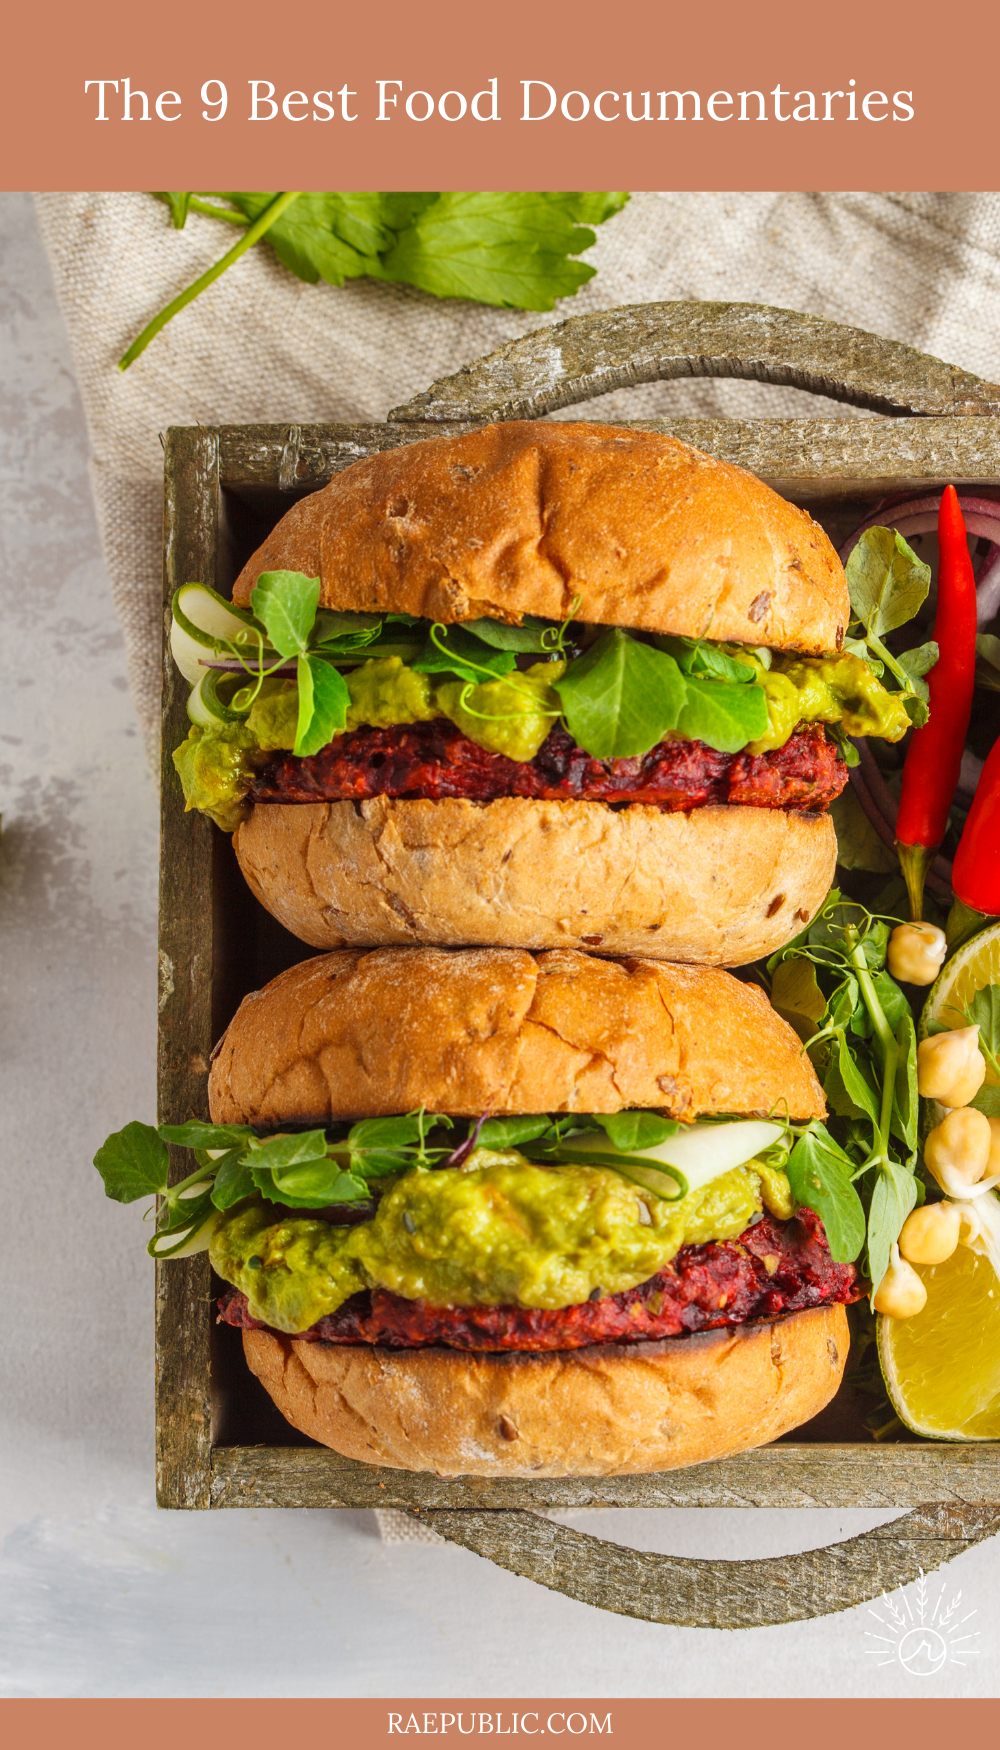 Nine vegan food documentaries to get you started right on your plant-based journey.